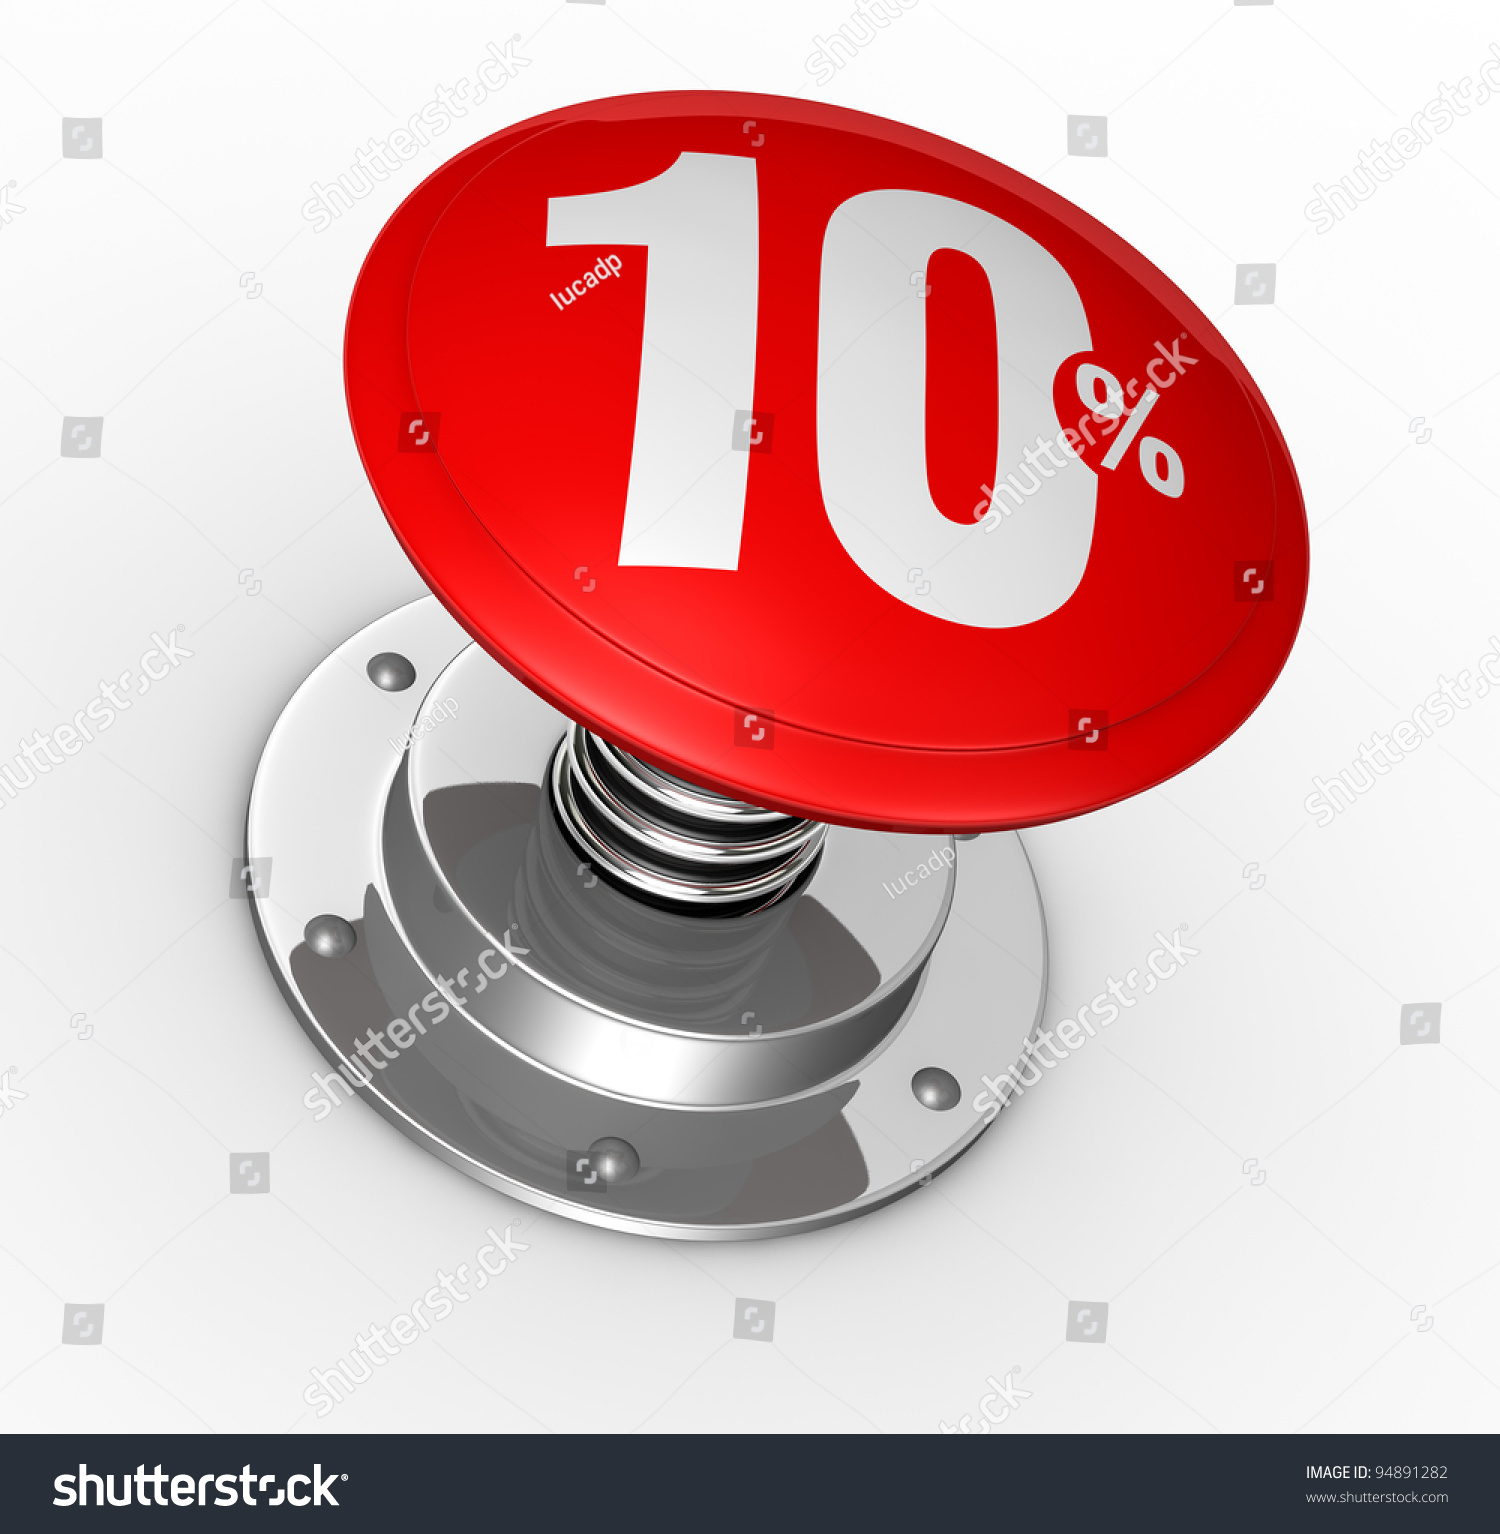 One button number 10 percent symbol stock illustration 94891282 one button with number 10 and percent symbol 3d render biocorpaavc